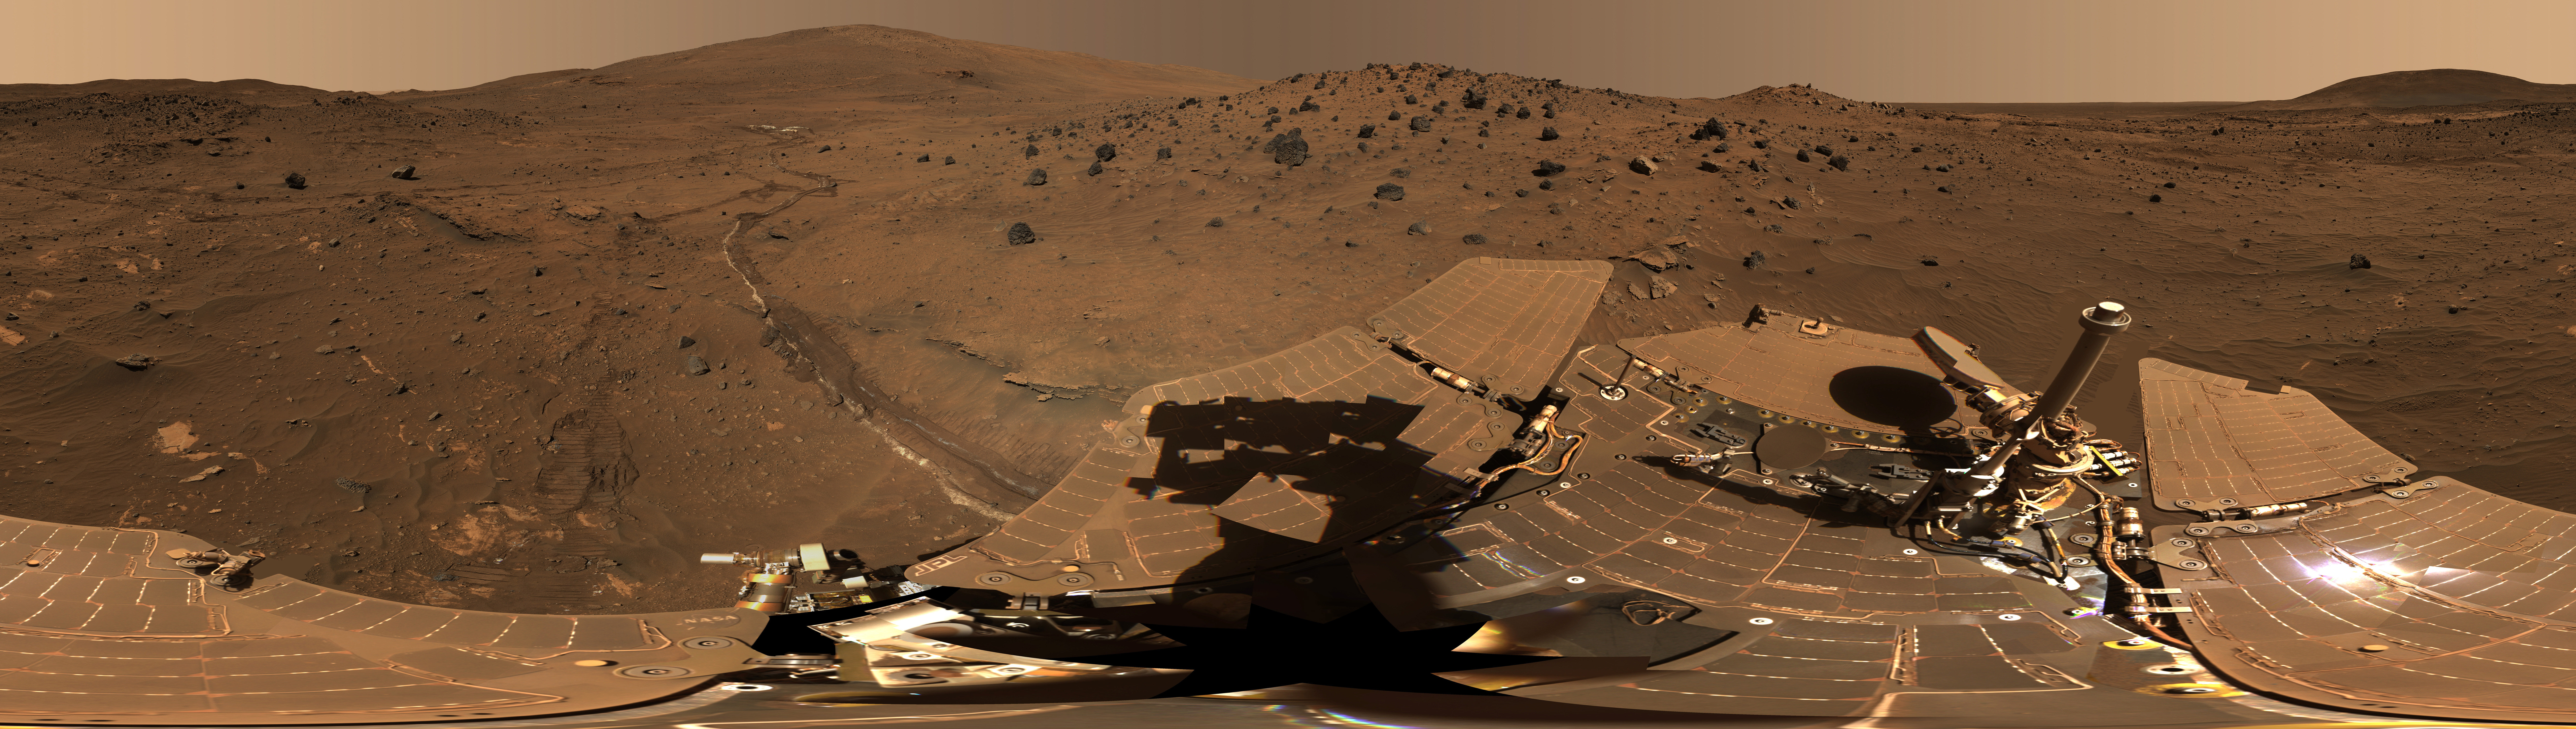 the mars exploration rover mission - photo #39